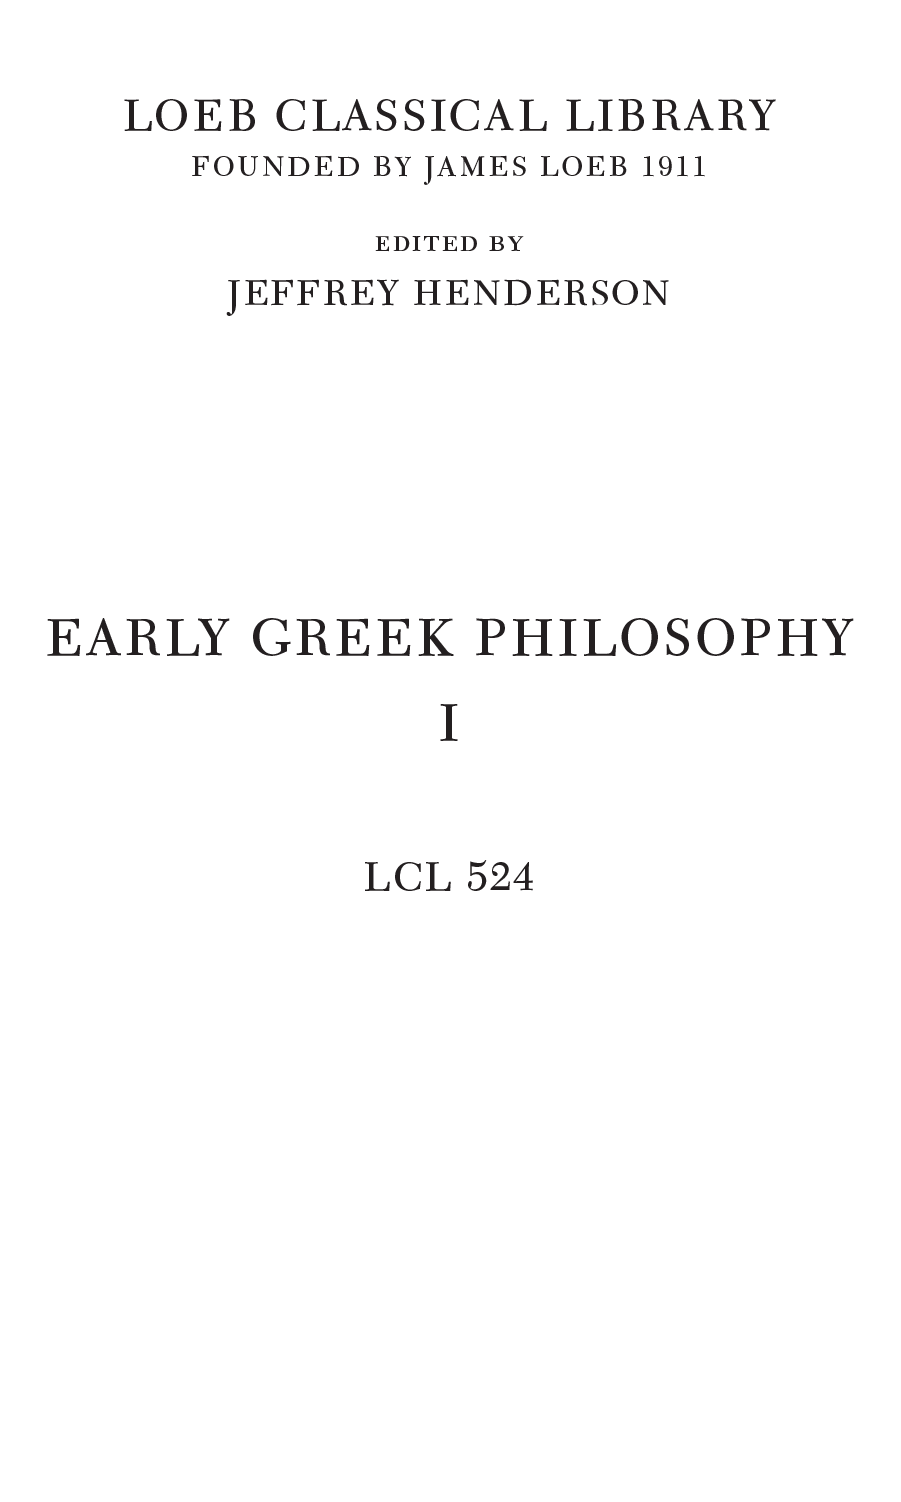 LOEB CLASSICAL LIBRARY FOUNDED BY JAMES LOEB 1911 edited by JEFFREY HENDERSON EARLY GREEK PHILOSOPHY I LCL 524